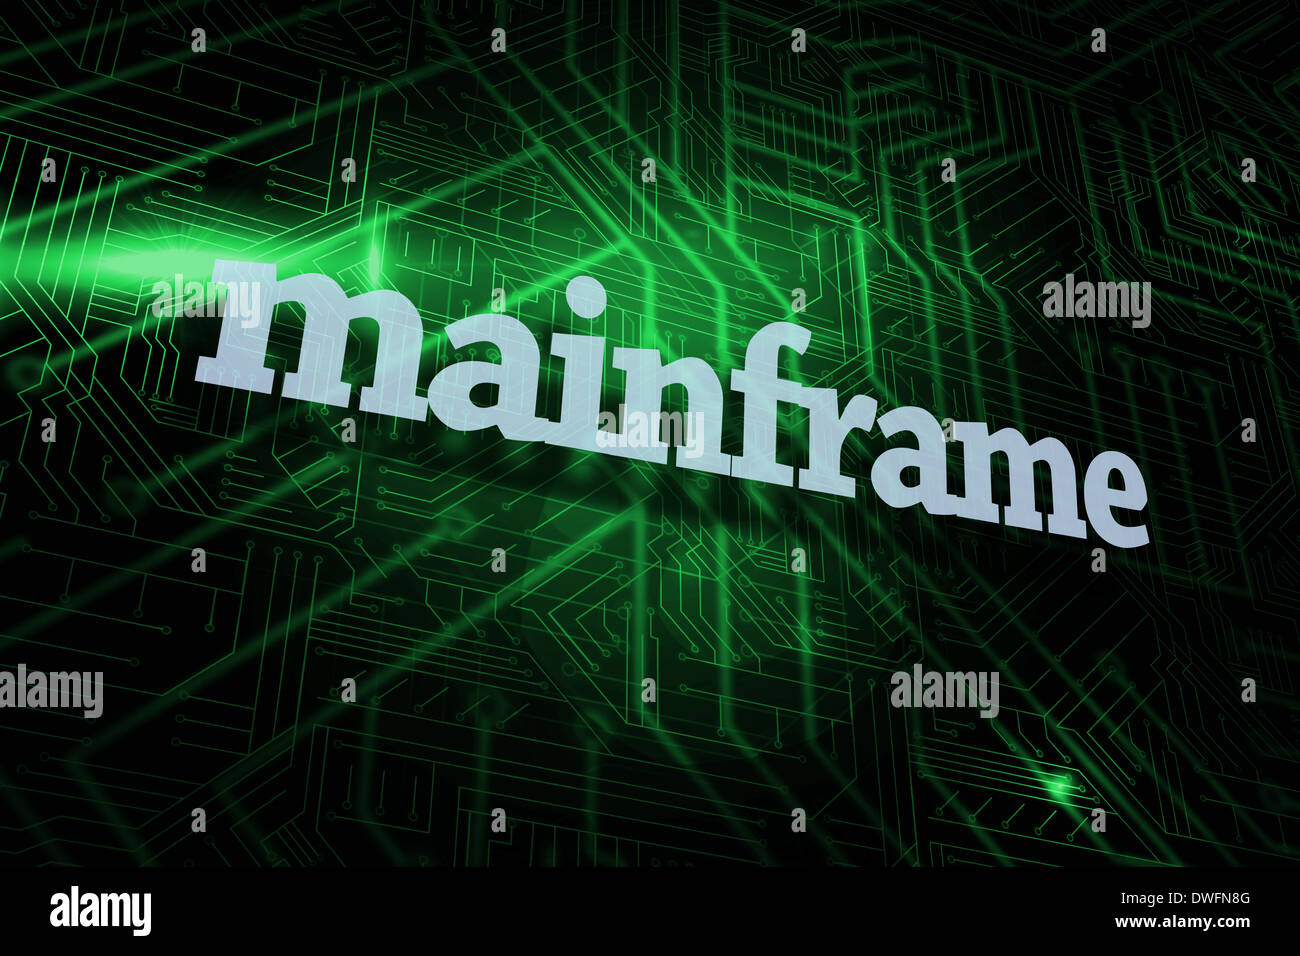 Mainframe against green and black circuit board - Stock Image